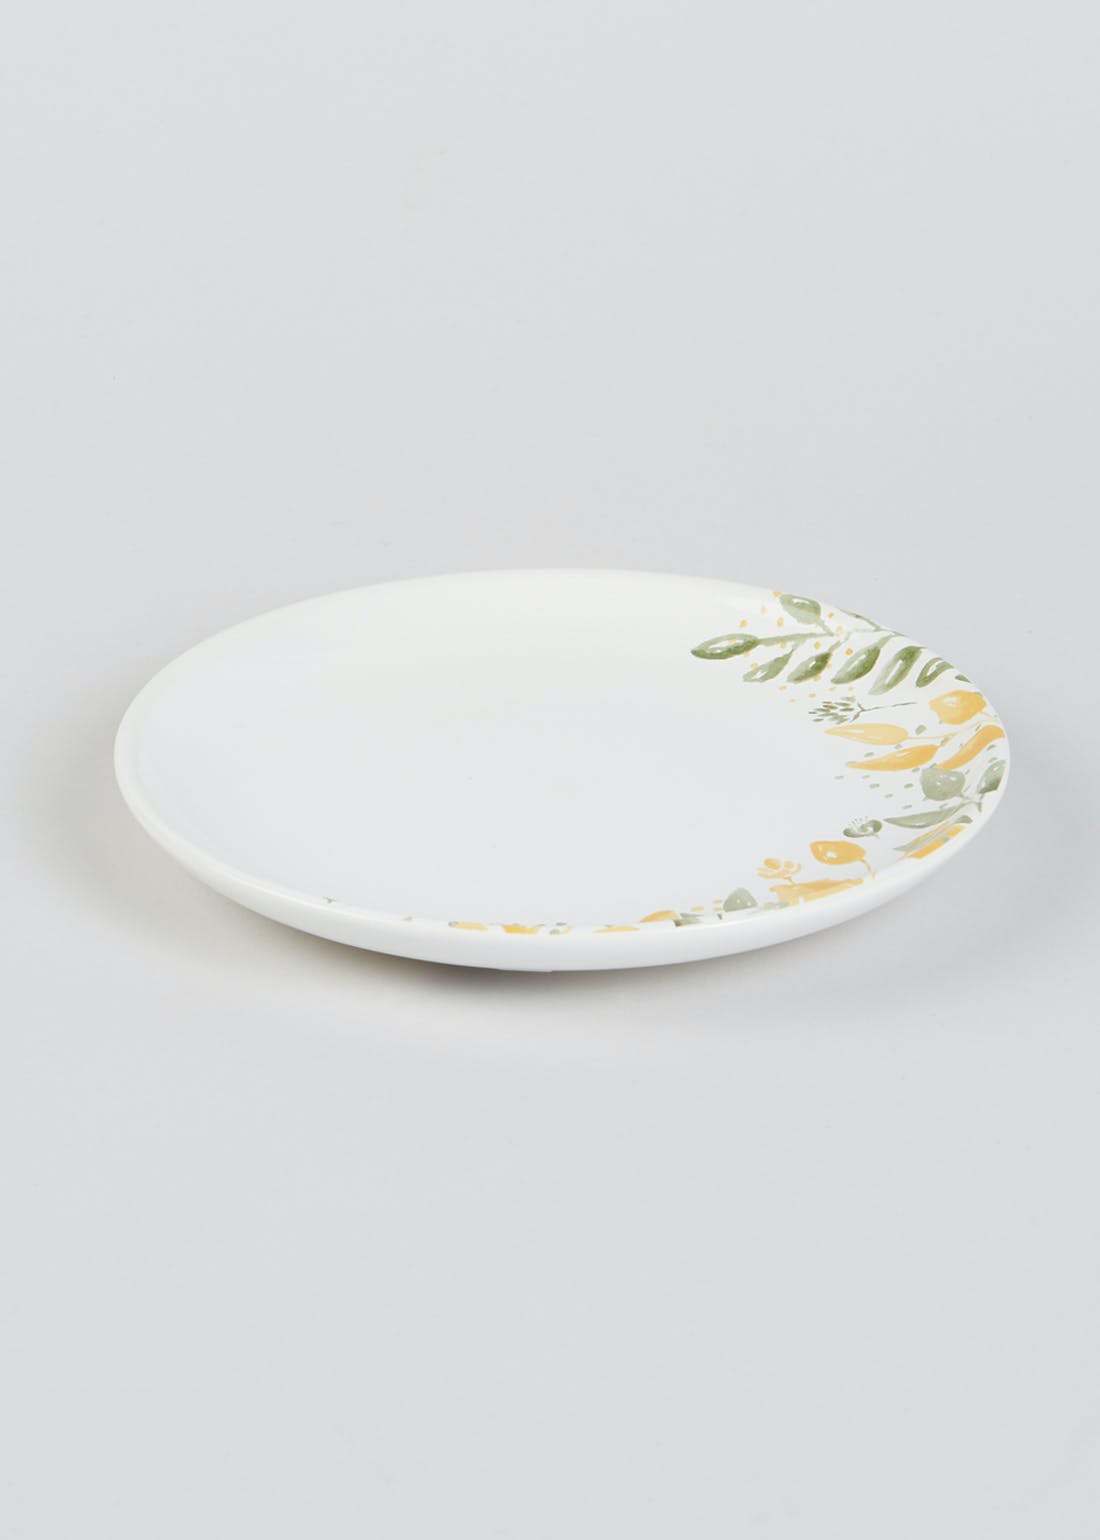 Floral Earthenware Side Plate (19.5cm)